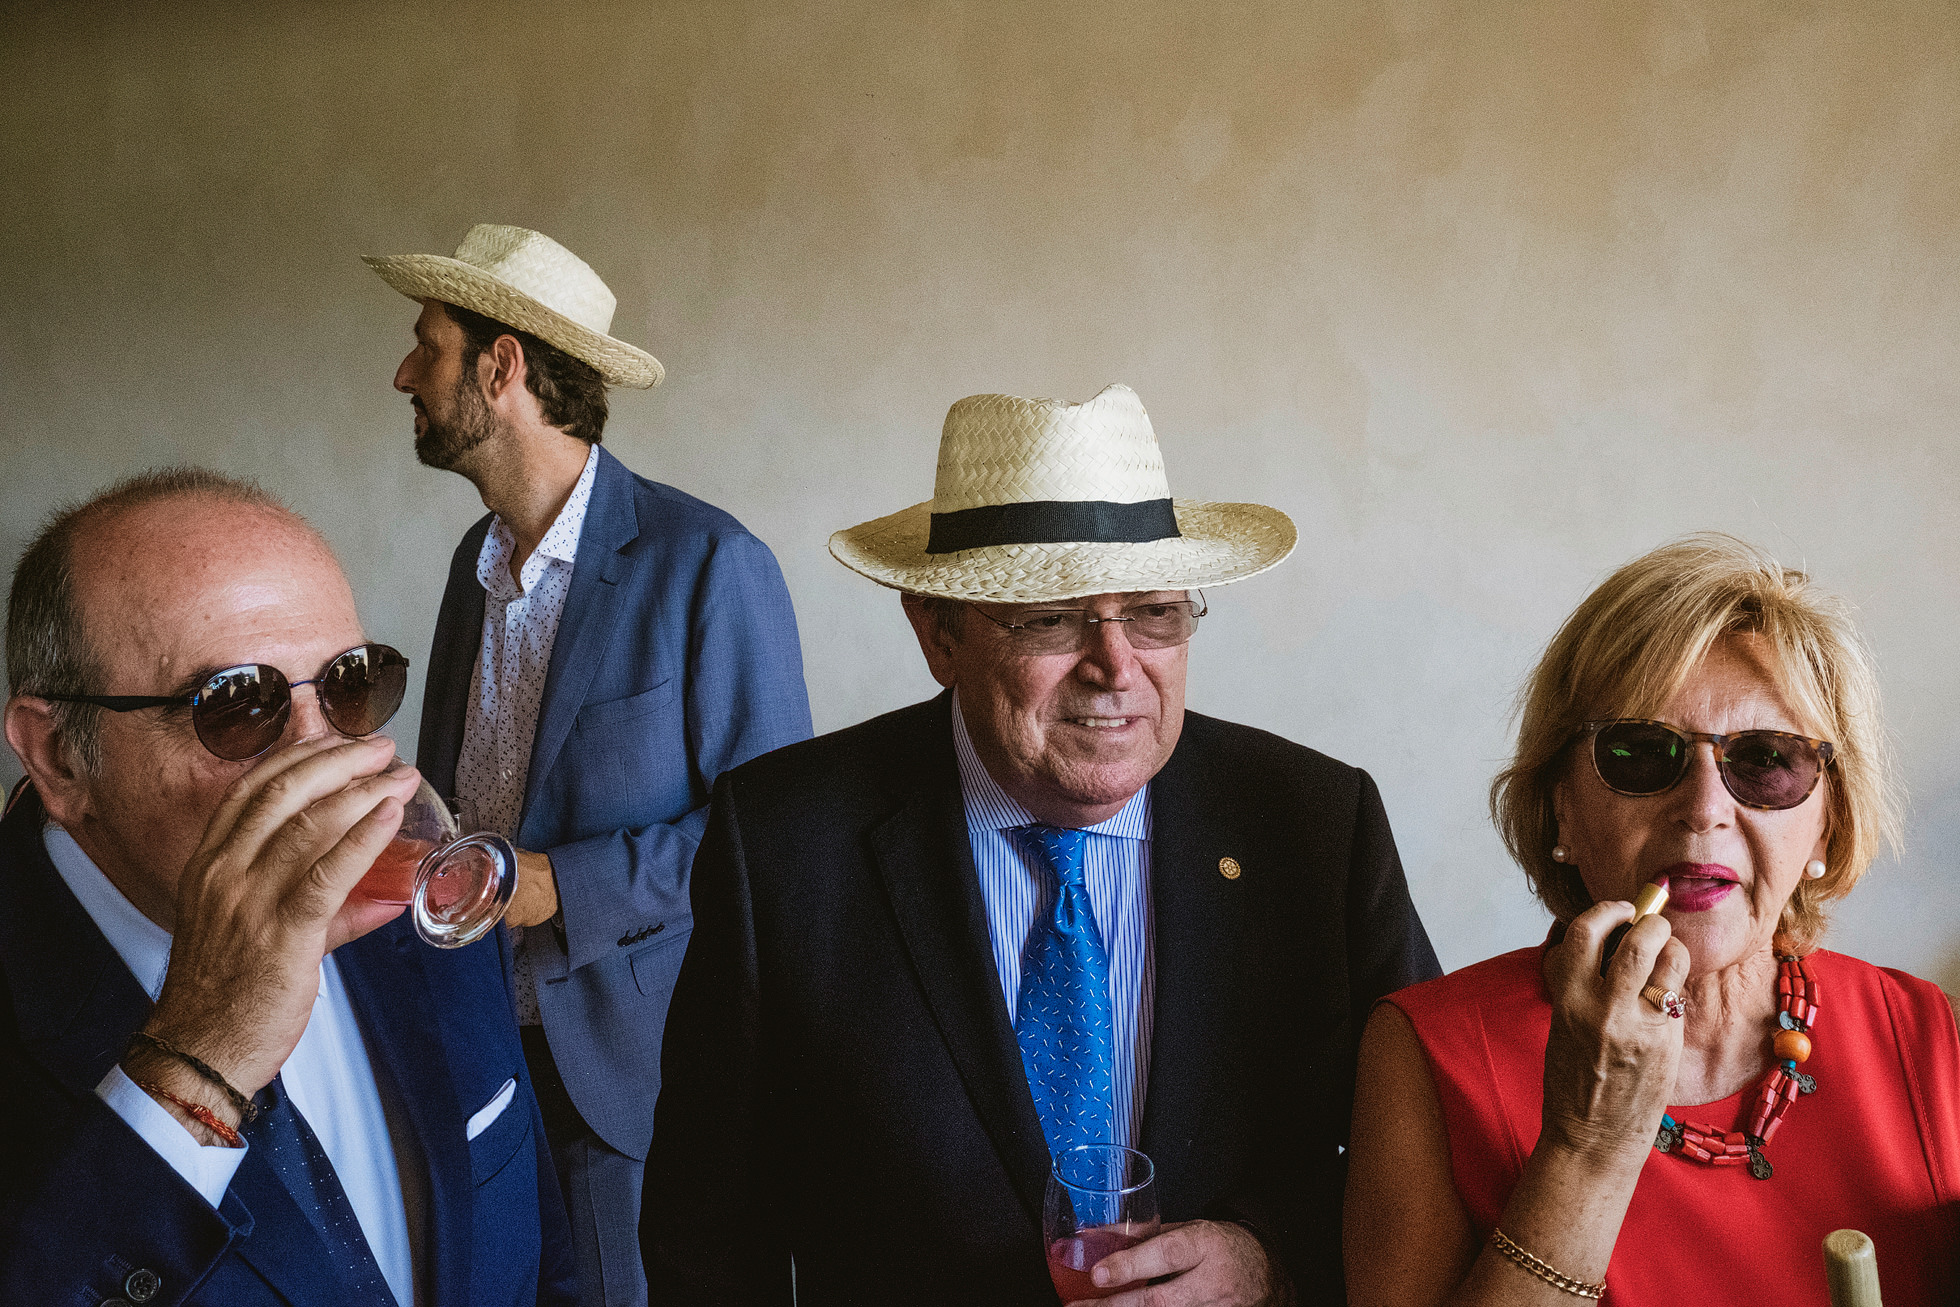 Photograph of Wedding Guests in straw hats at Krakow wedding